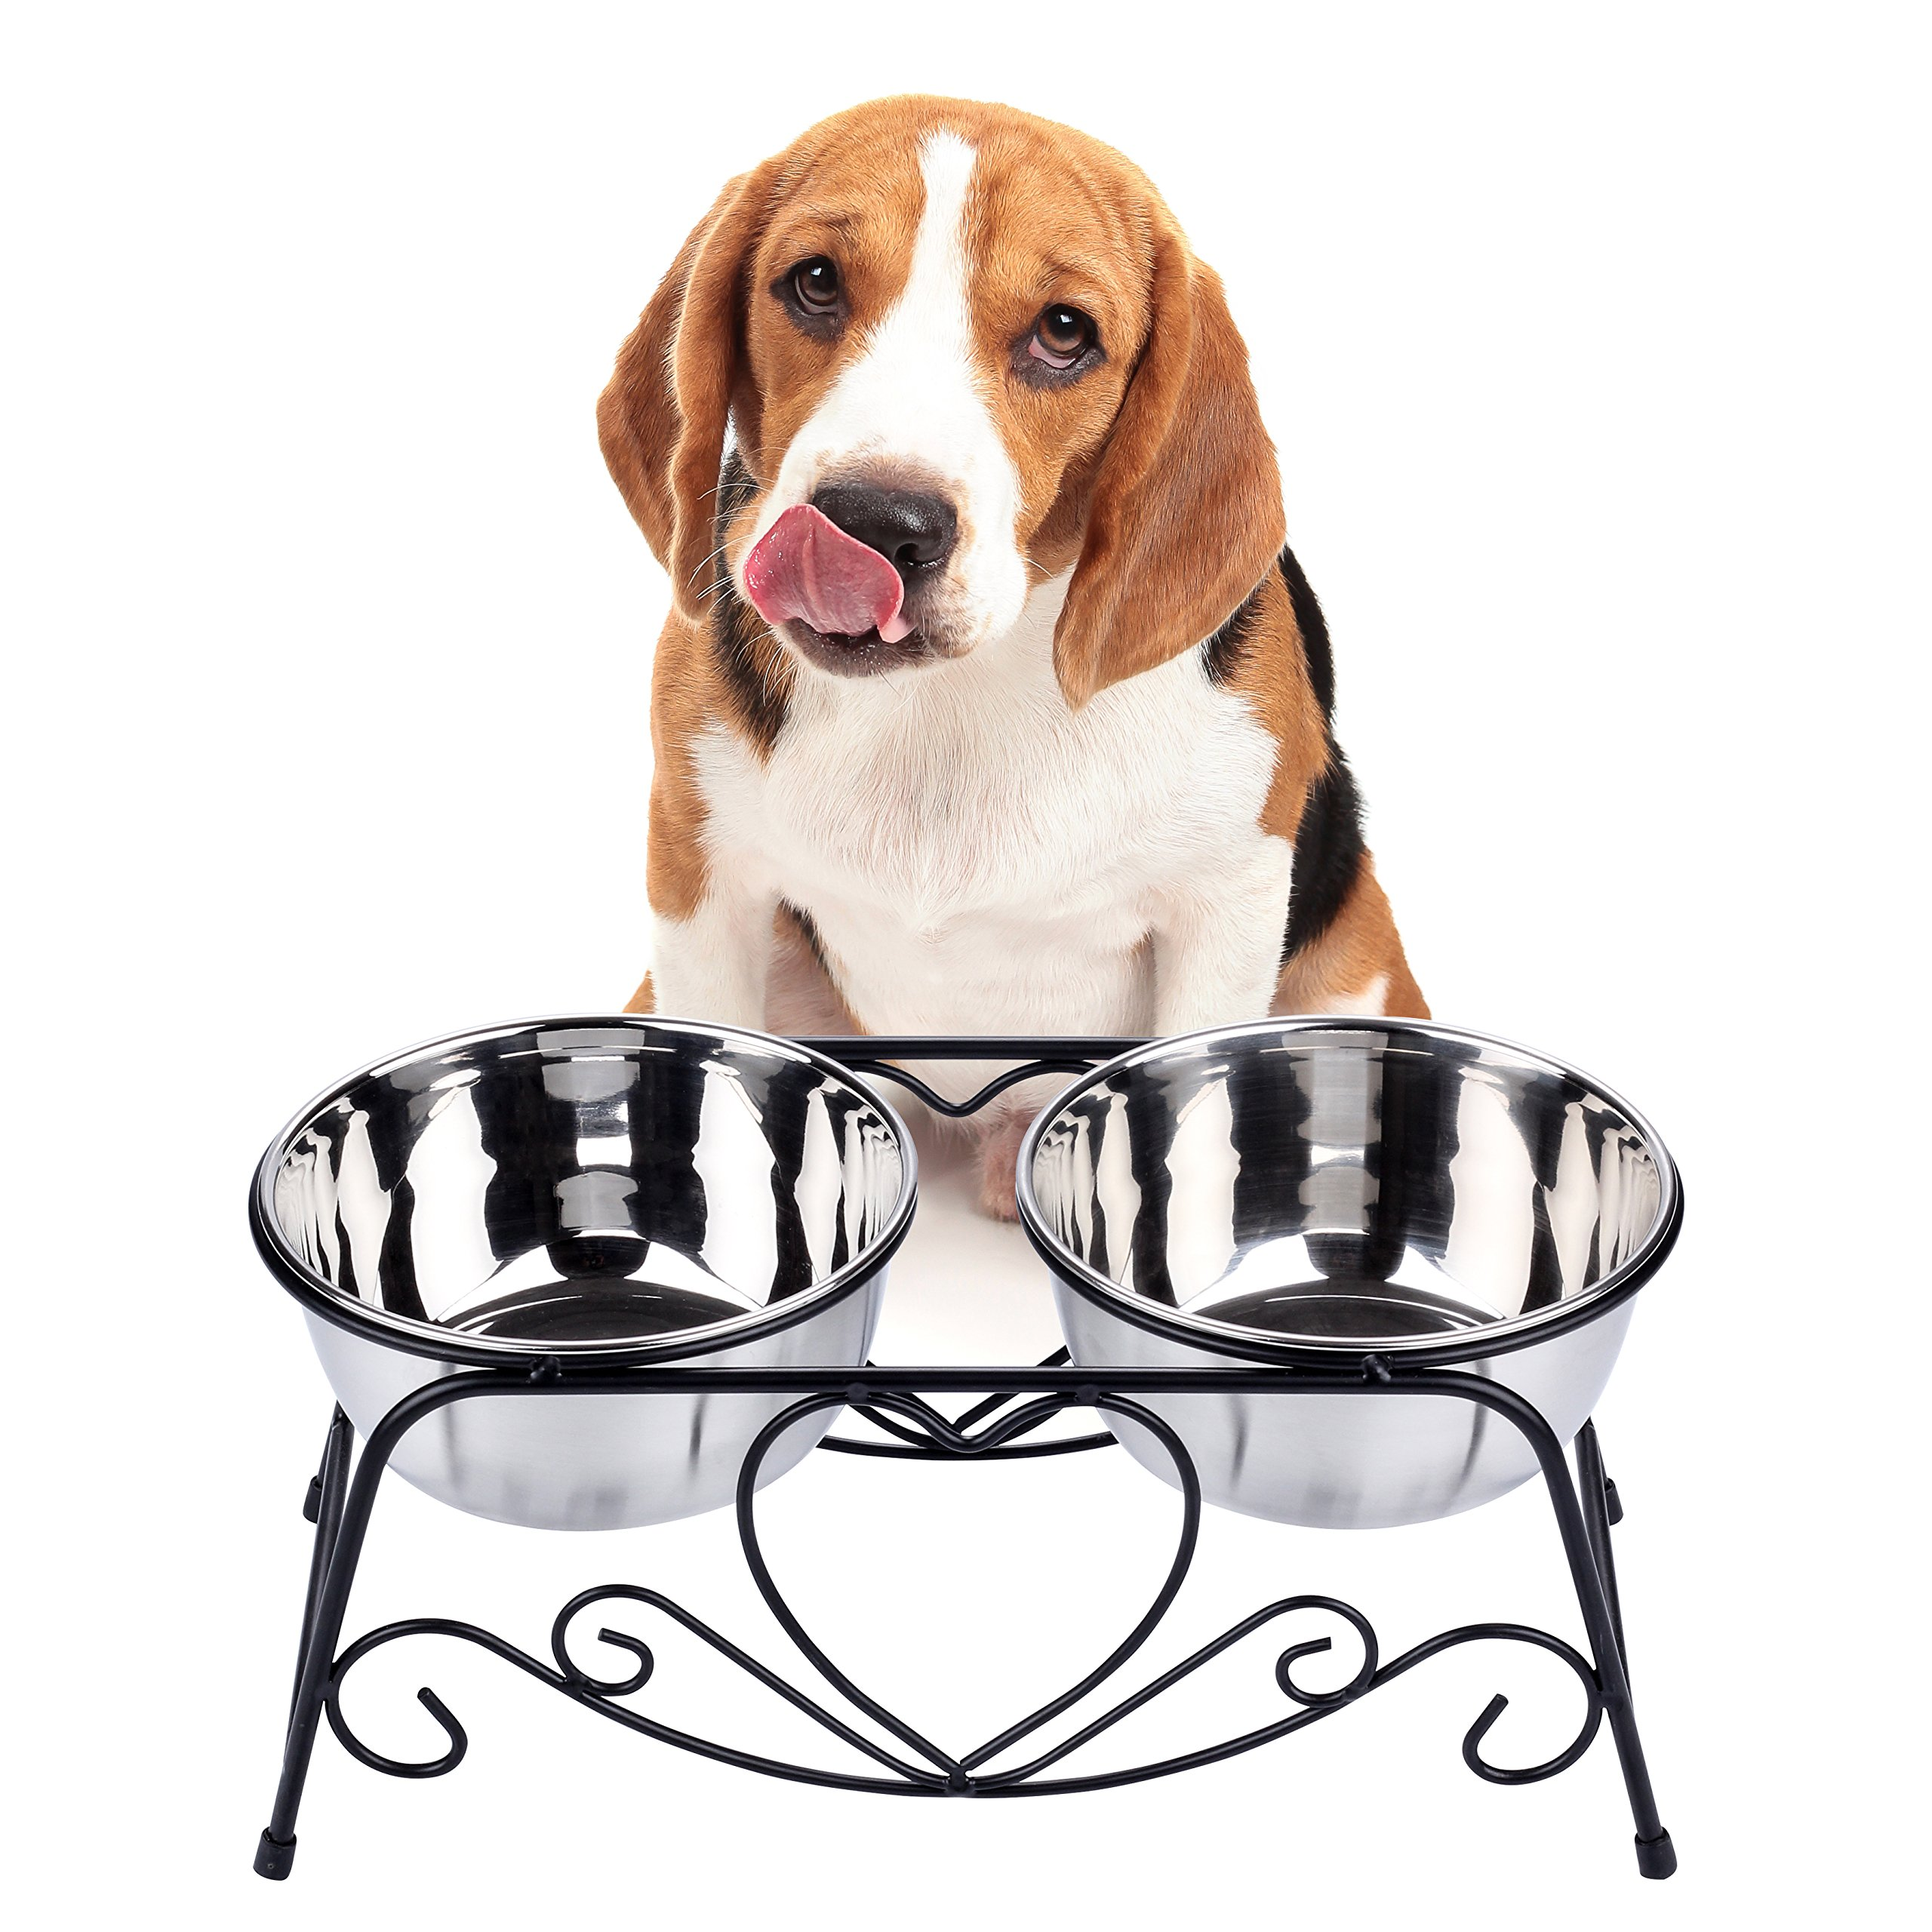 VIVIKO Pet Feeder for Dog Cat, Stainless Steel Food and Water Bowls with Iron Stand (Medium) by VIVIKO